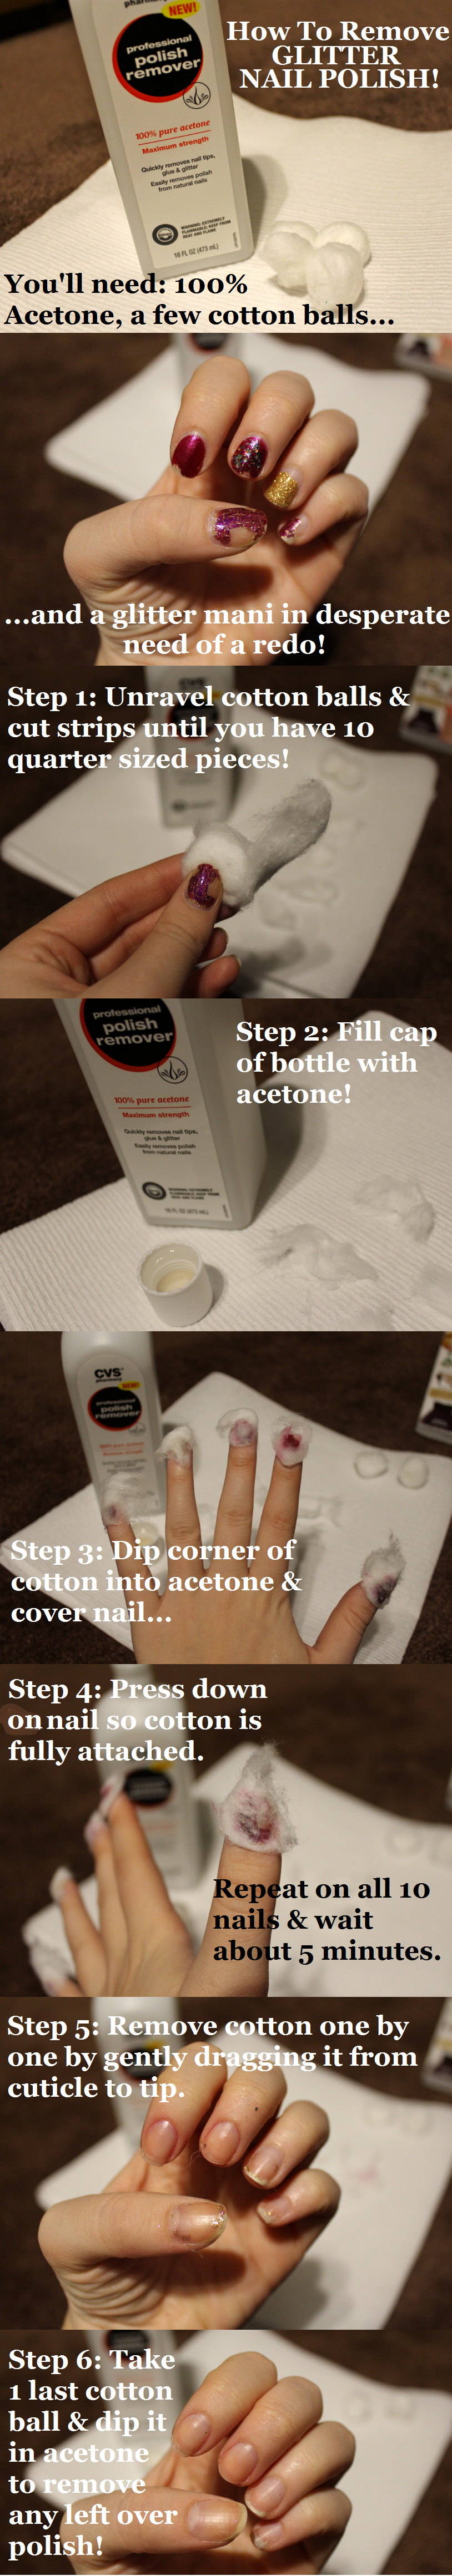 Livingaftermidnite: How to remove glitter nail polish